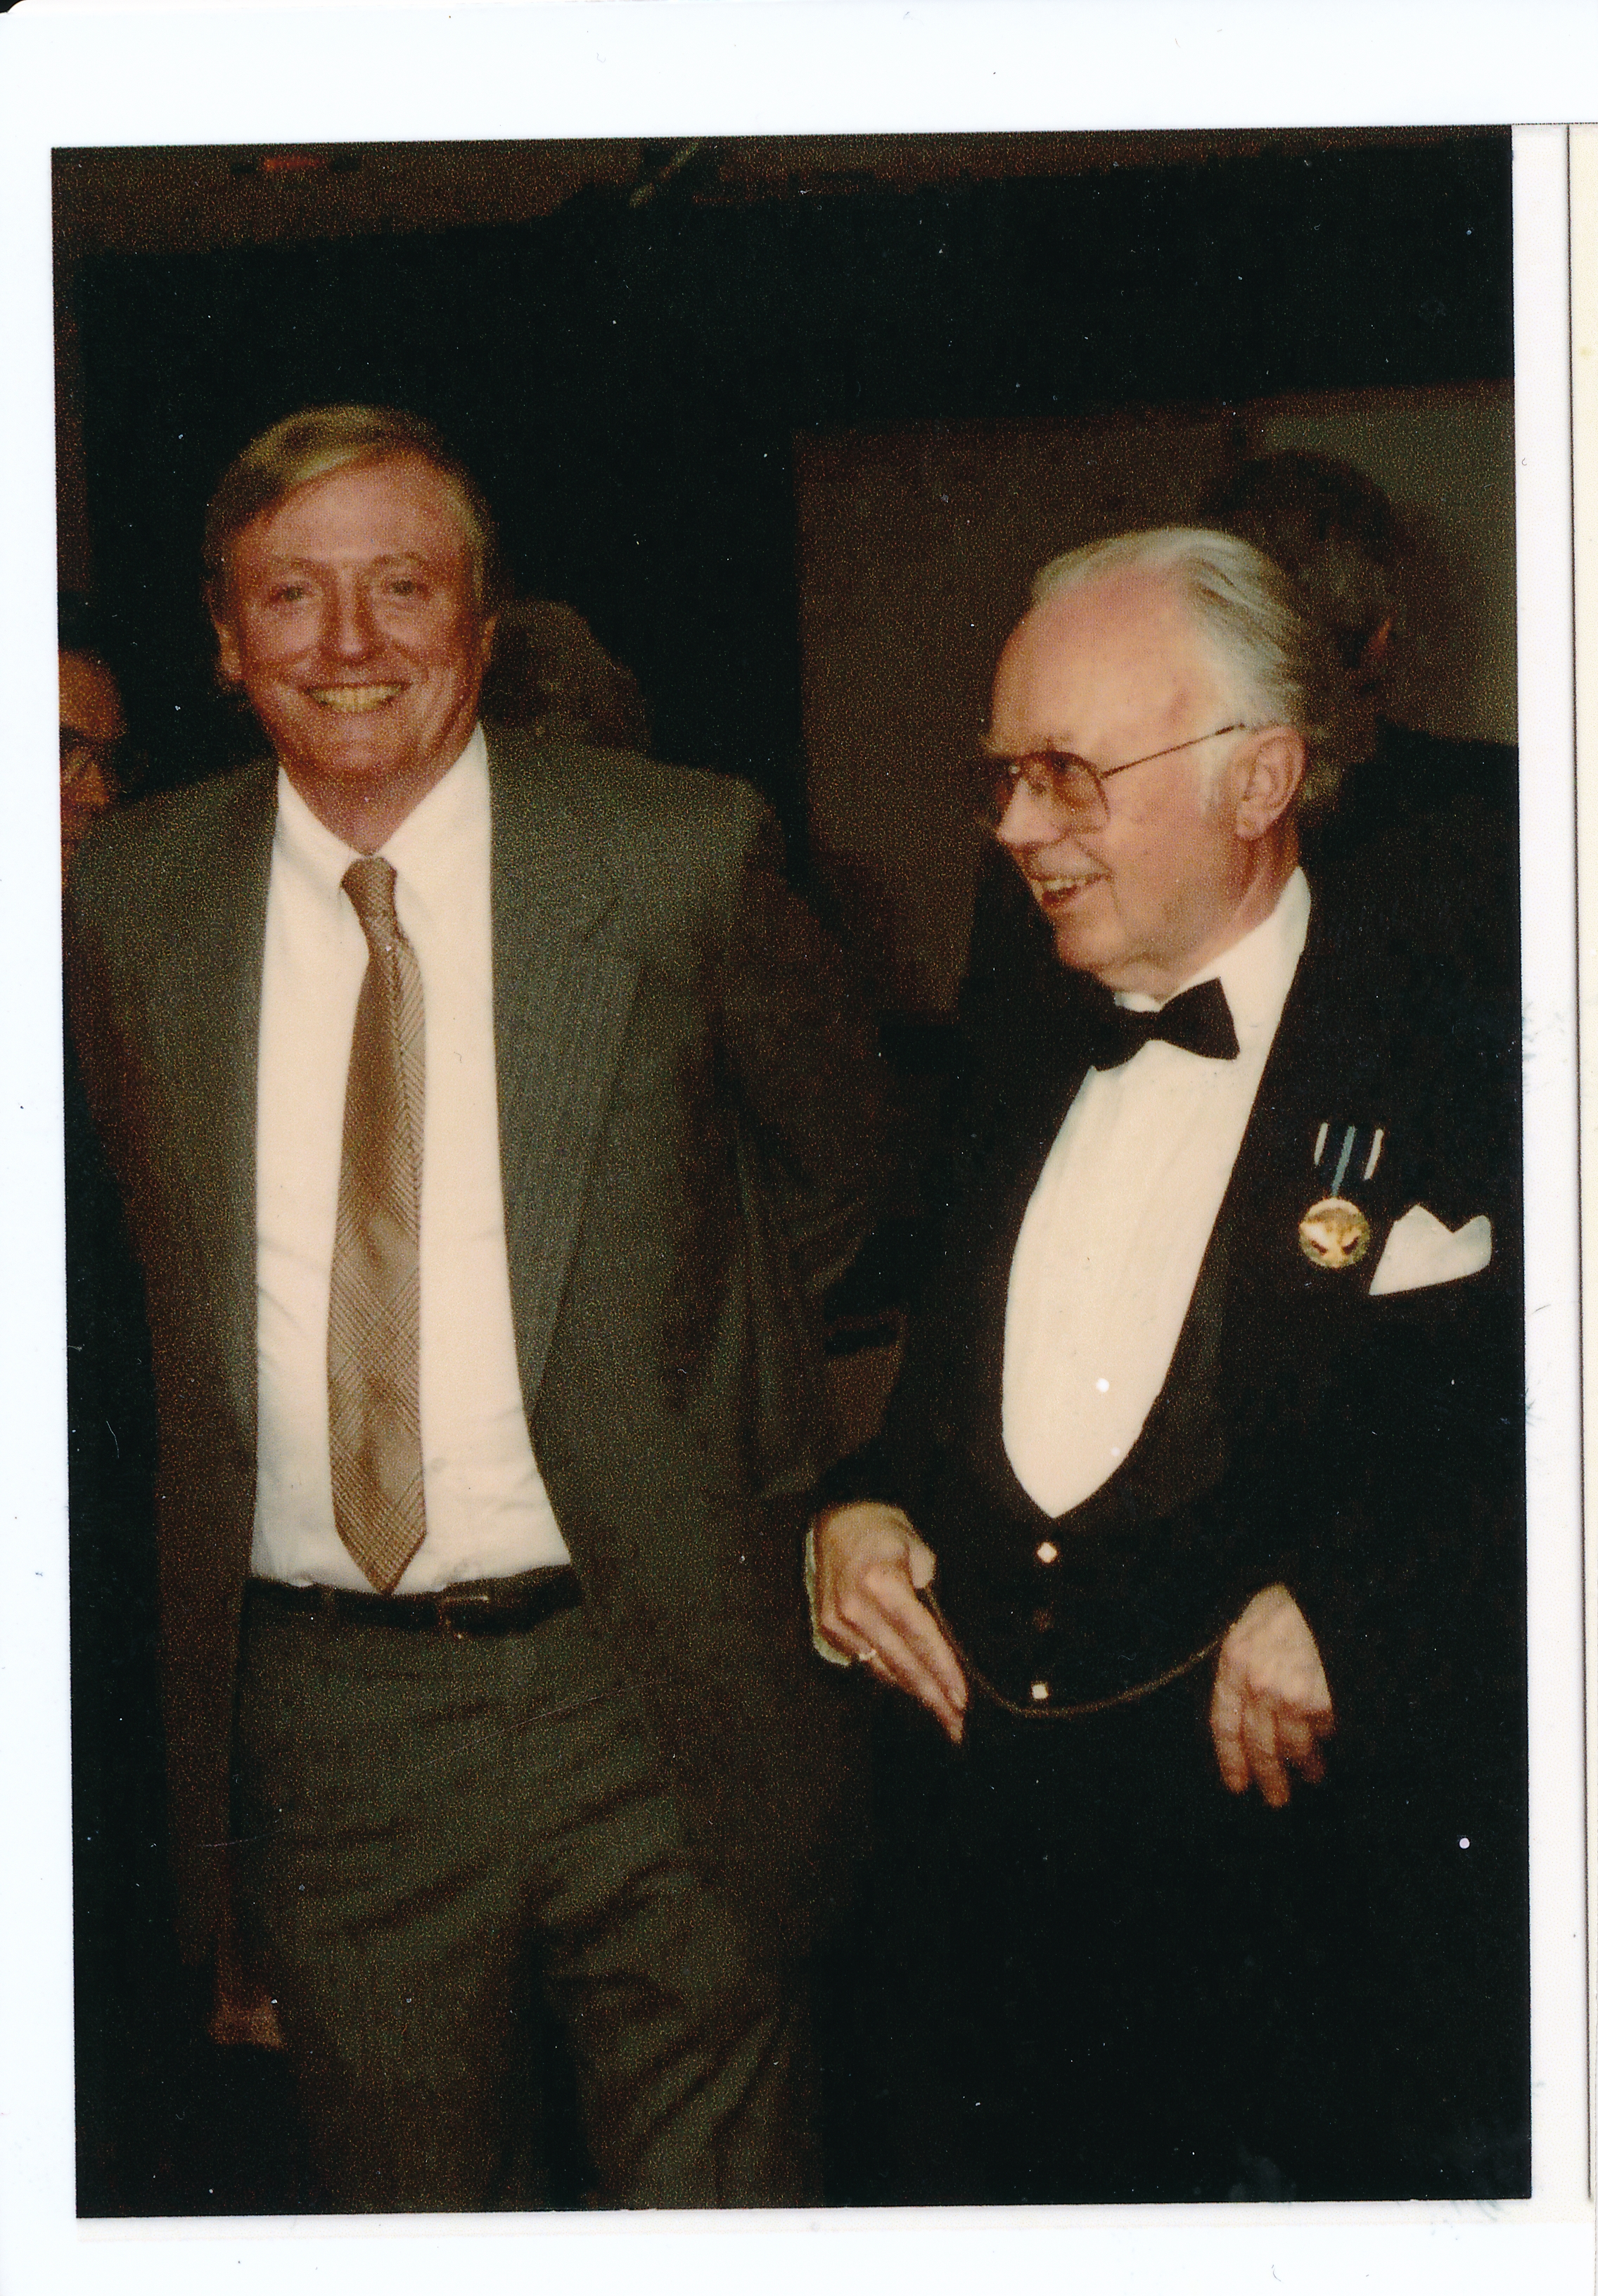 Longtime friends and collaborators, William F. Buckley, Jr., and Kirk.